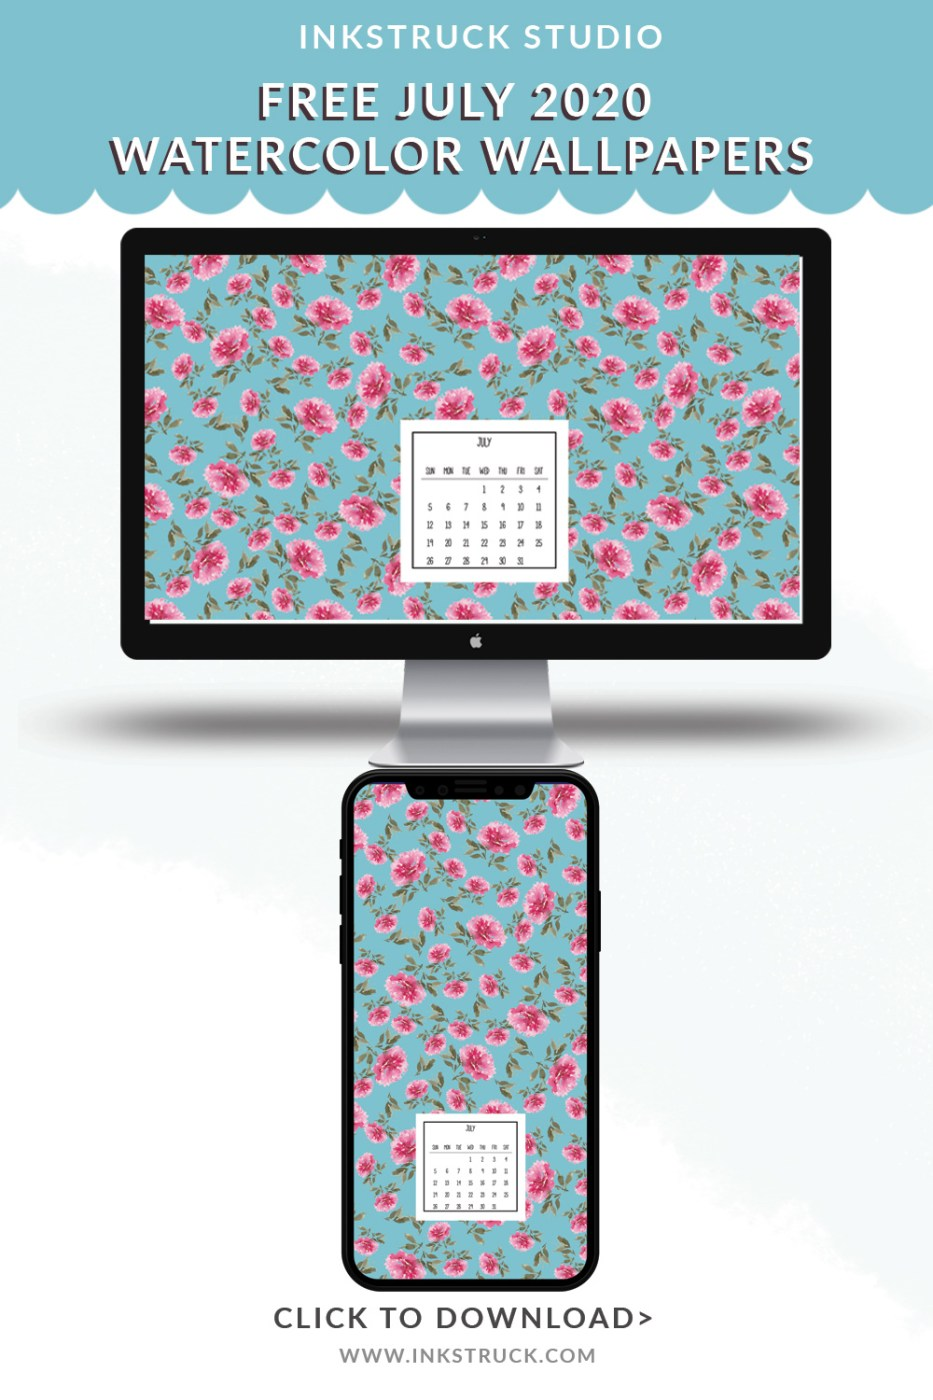 Download free July 2020 watercolor wallpapers for desktops and mobiles.